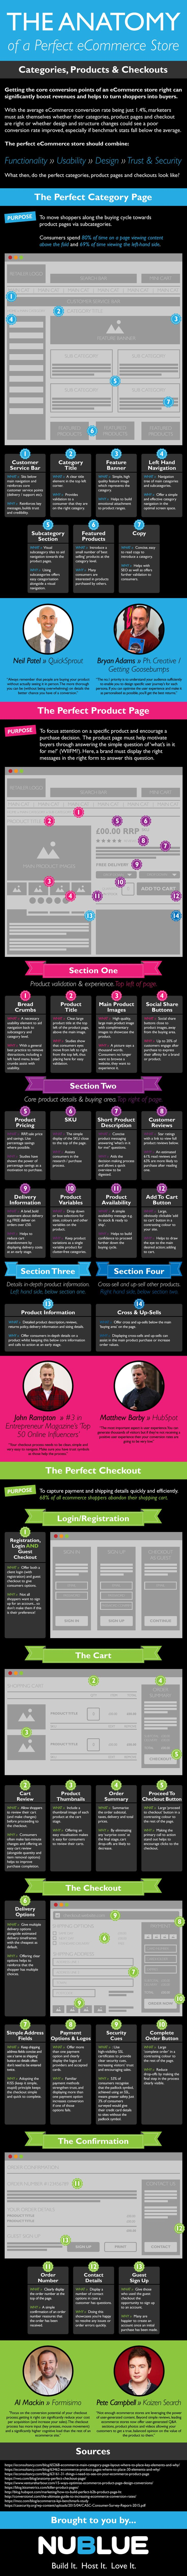 The Anatomy of a Perfect eCommerce Store #Infographic #eCommerce #Business